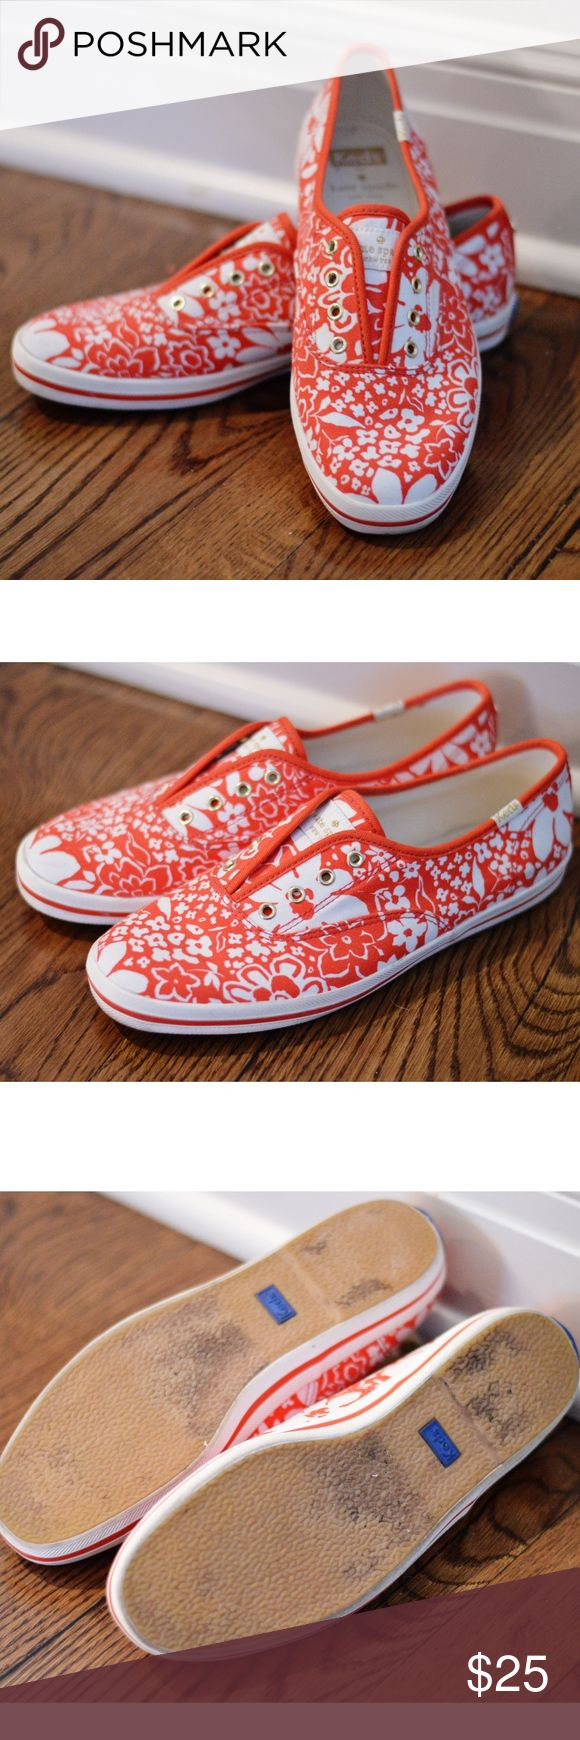 Kate Spade for Keds Sneakers SIZE 7.5 EUC Barely worn Ked sneakers designed with Kate Spade. They fit true to size. Coral floral pattern. Keds Shoes Sneakers